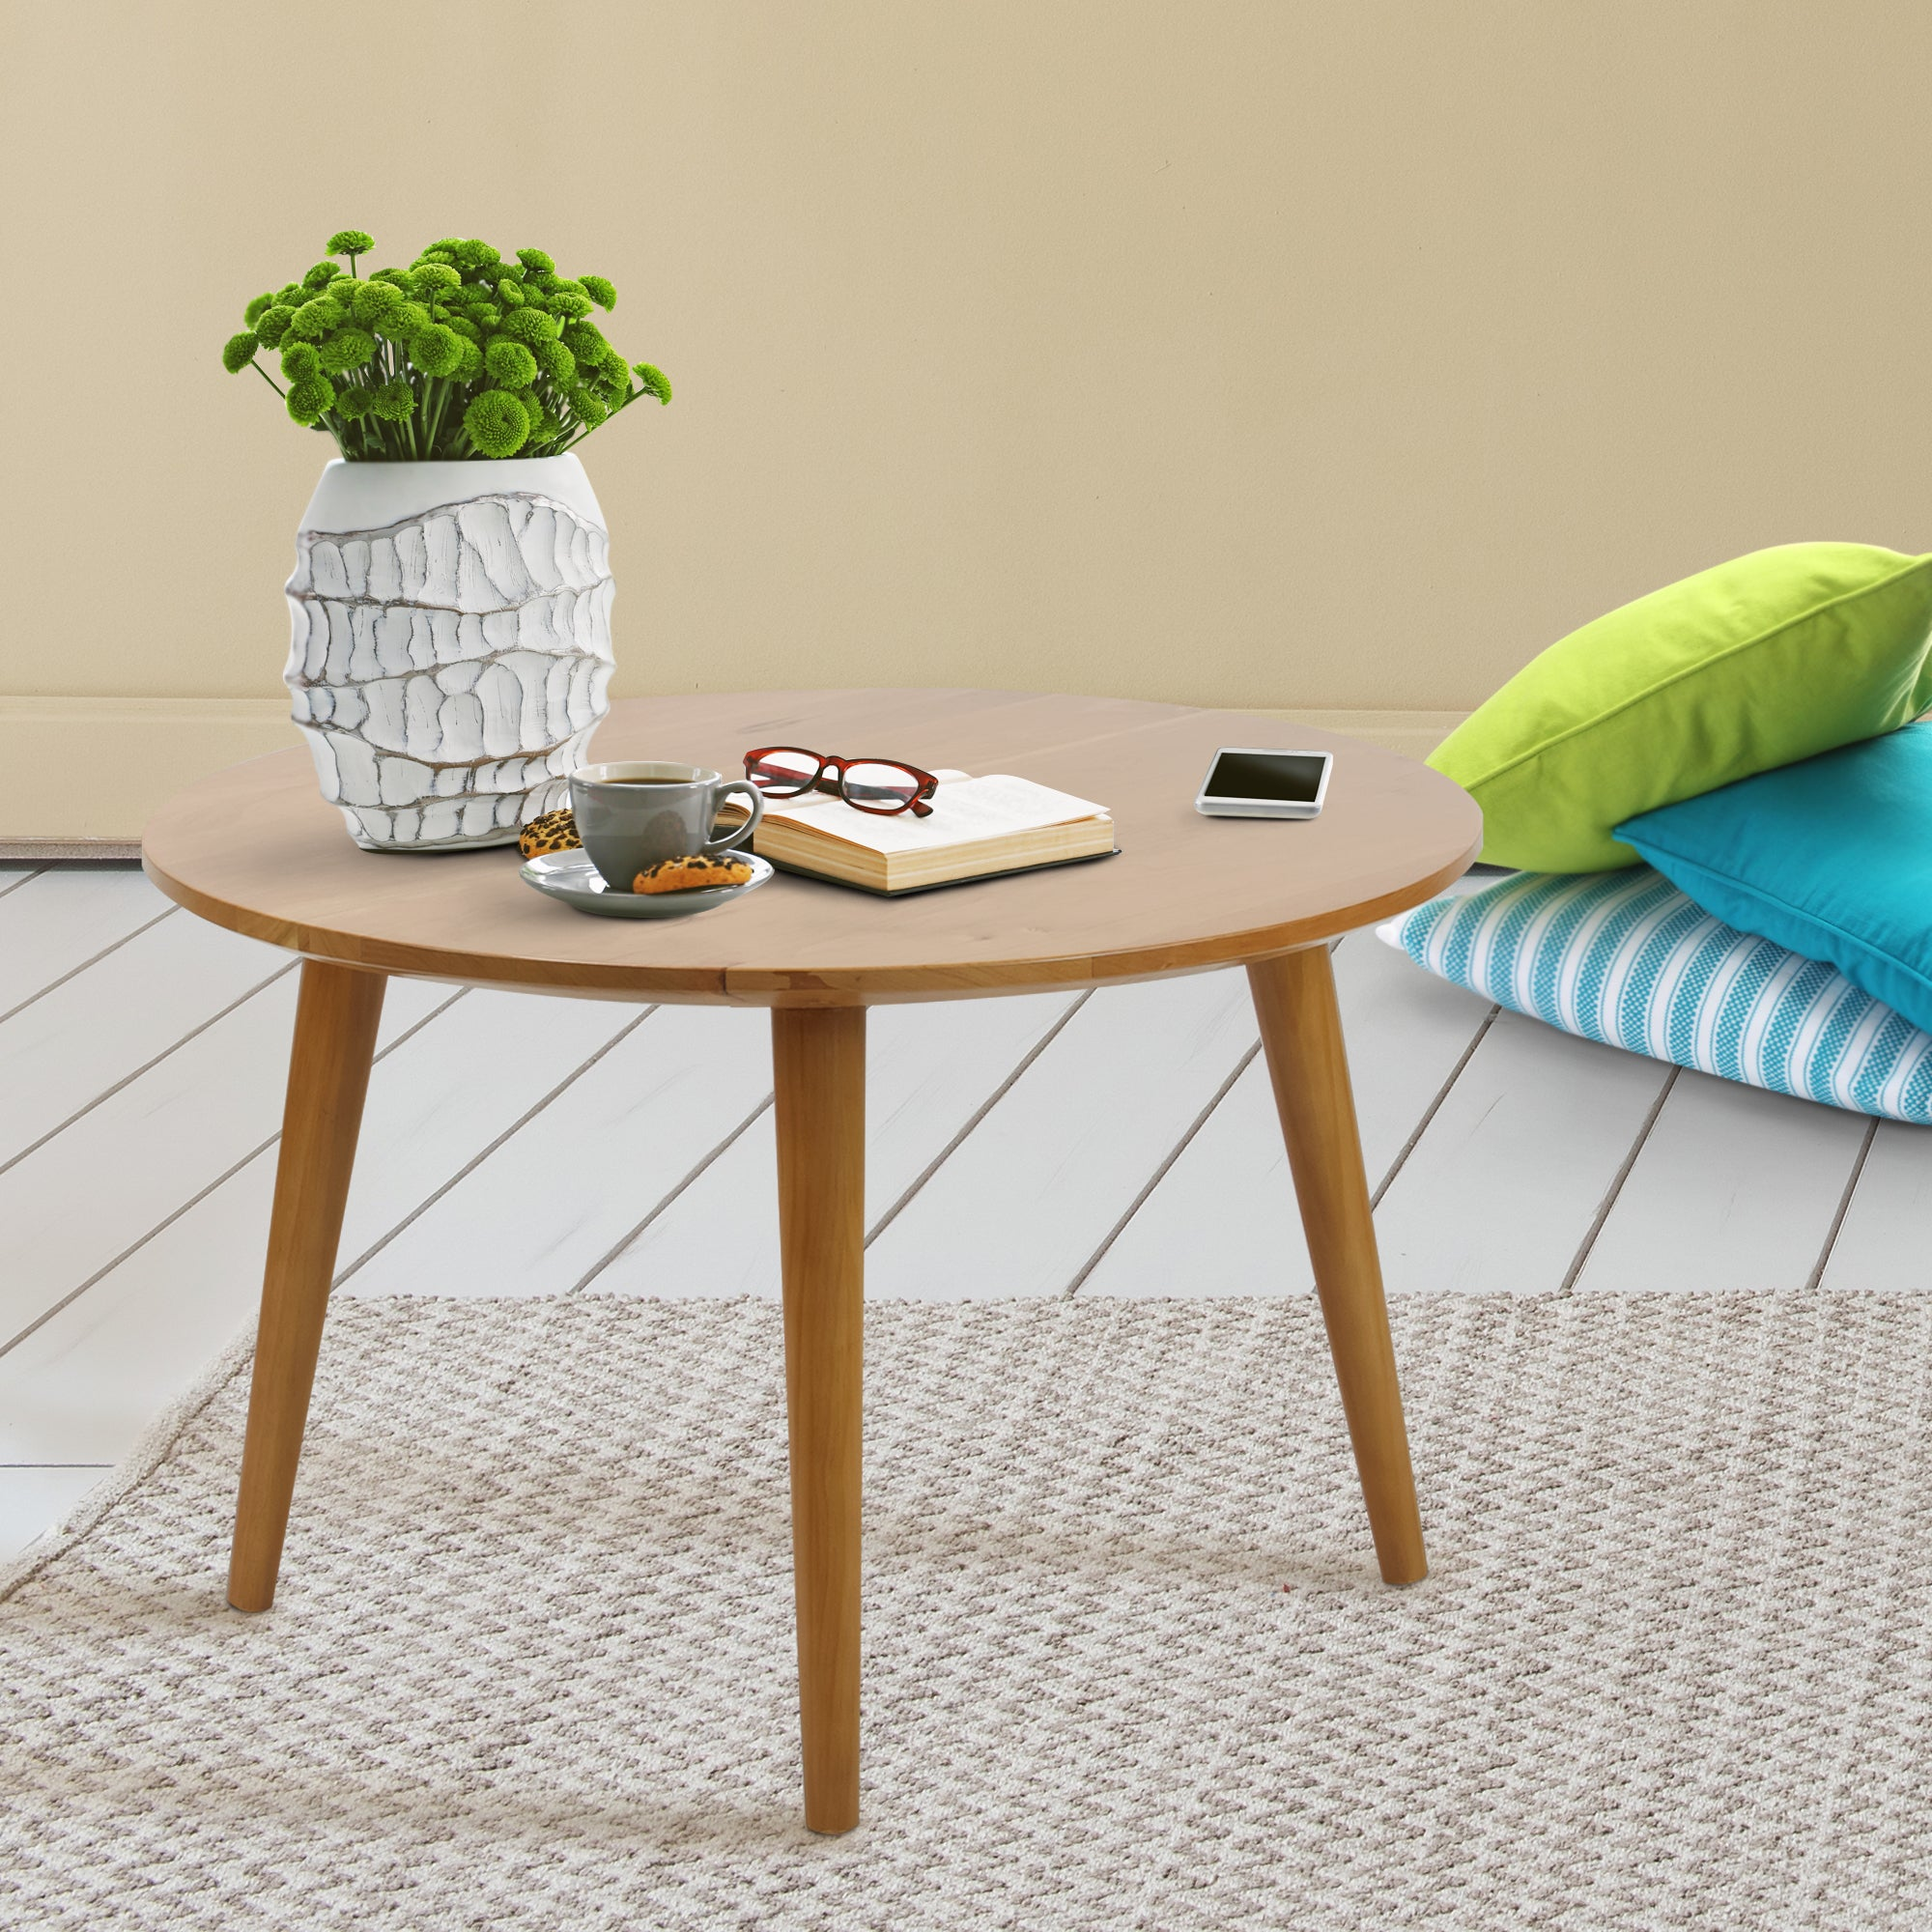 Modern Wood Coffee Table: Shop American Trails Mesa Mid Century Modern Round Coffee